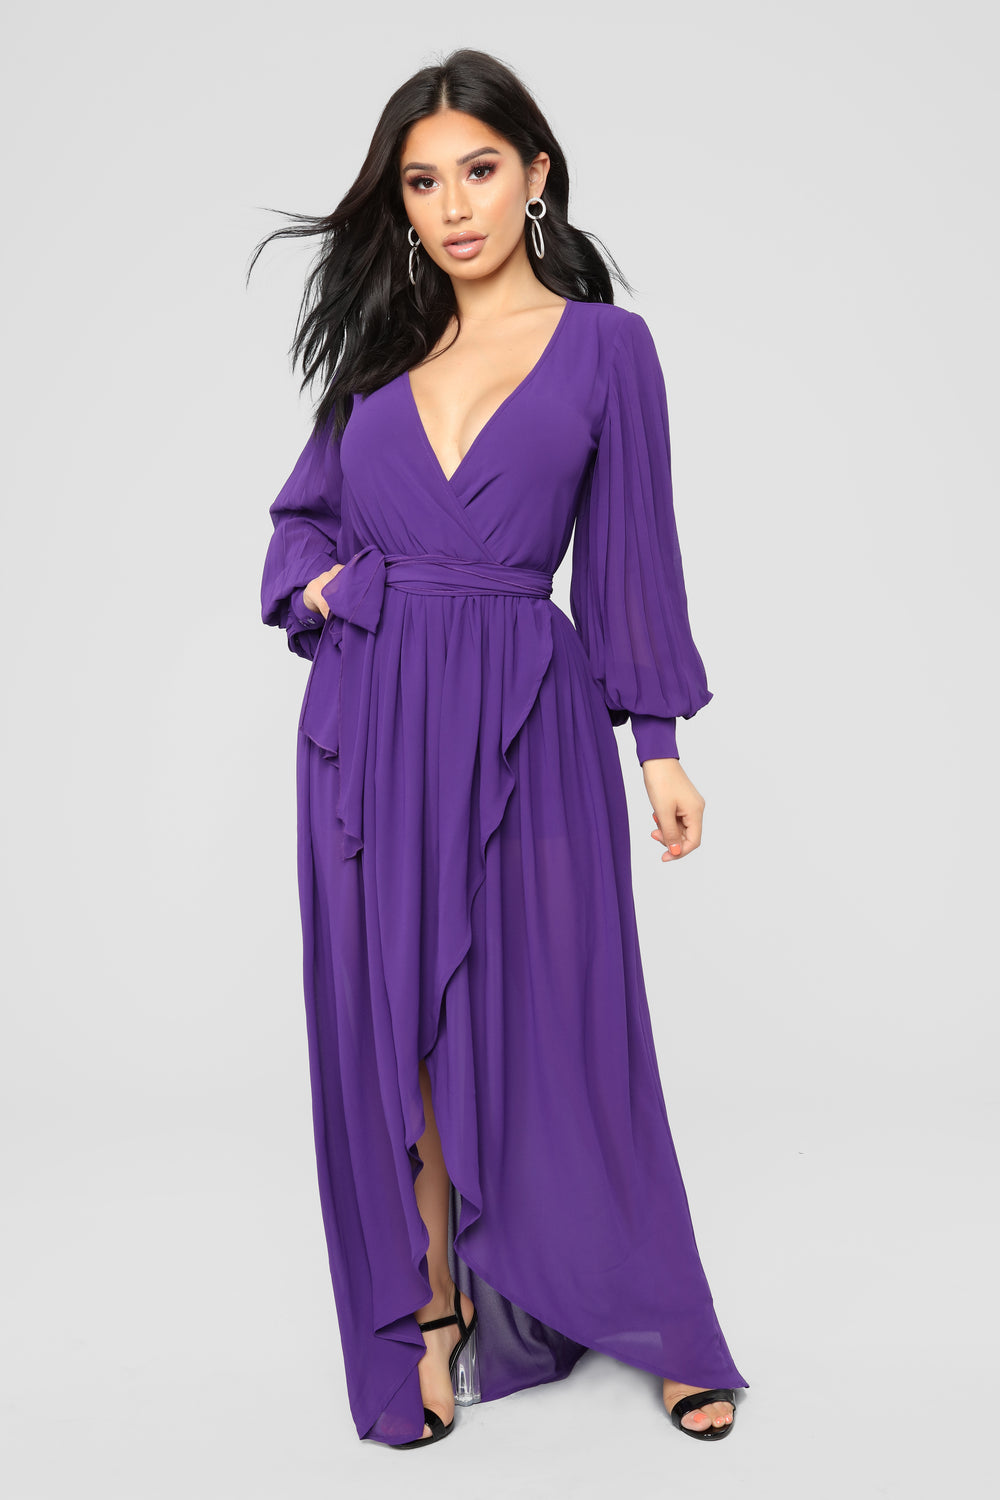 Say Nothing Dress - Purple